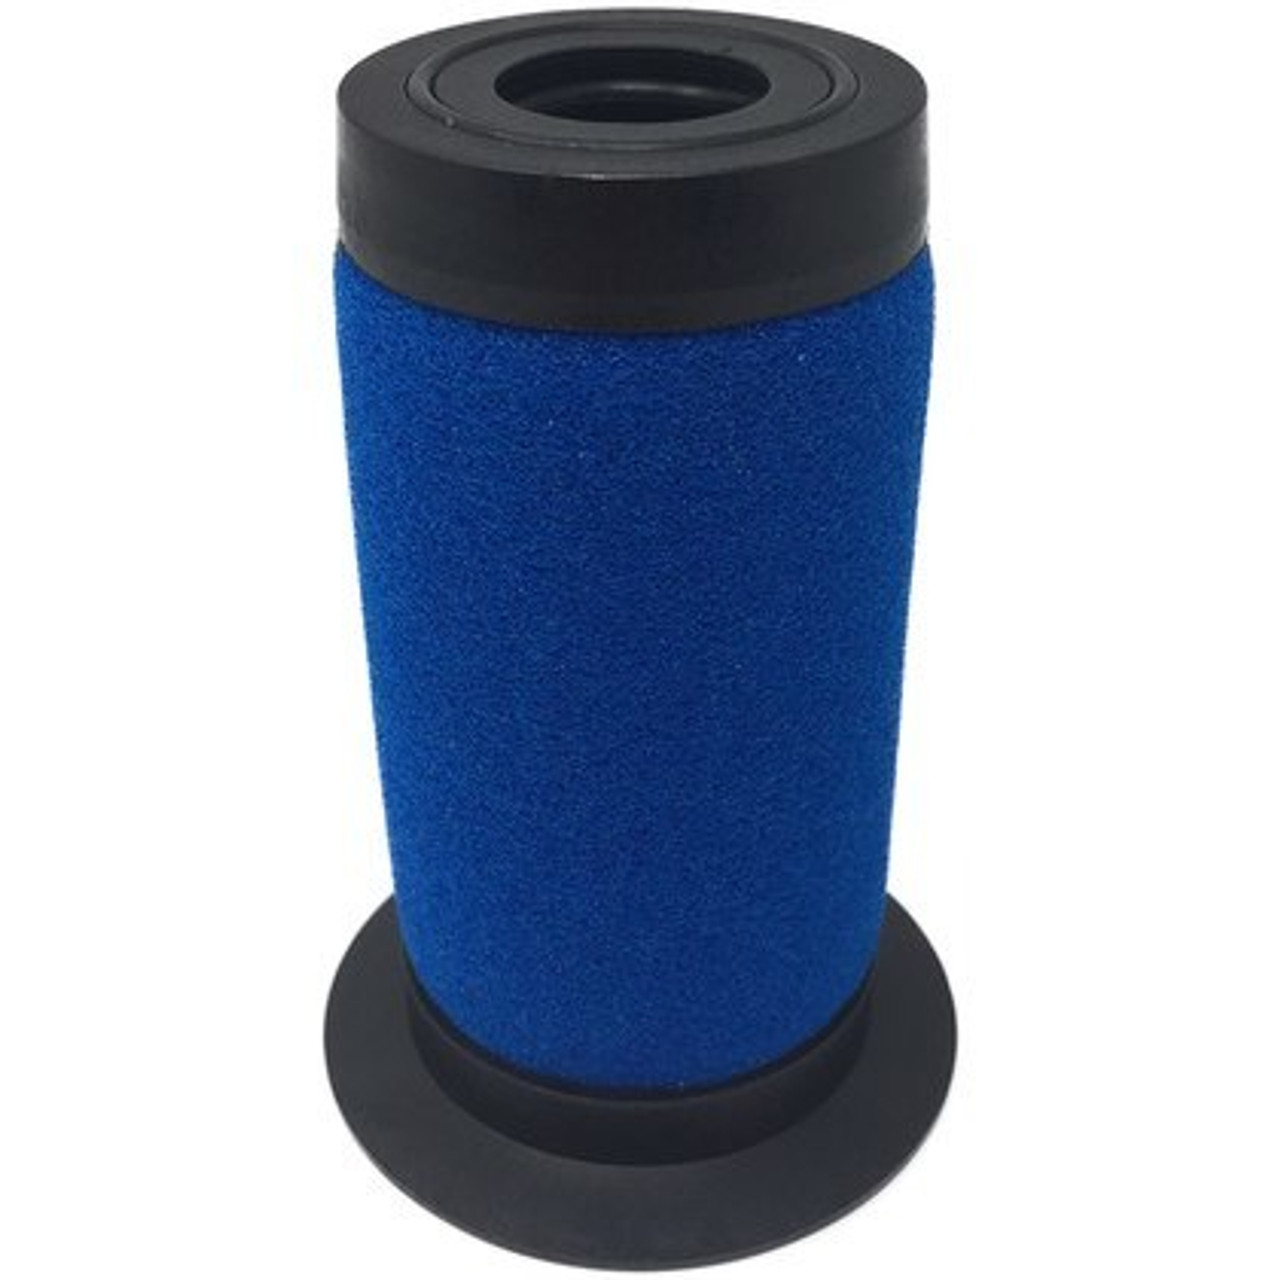 C350 Replacement Filter Element for Kaeser 0.01 Micron Particulate//0.01 PPM Oil Removal Efficiency